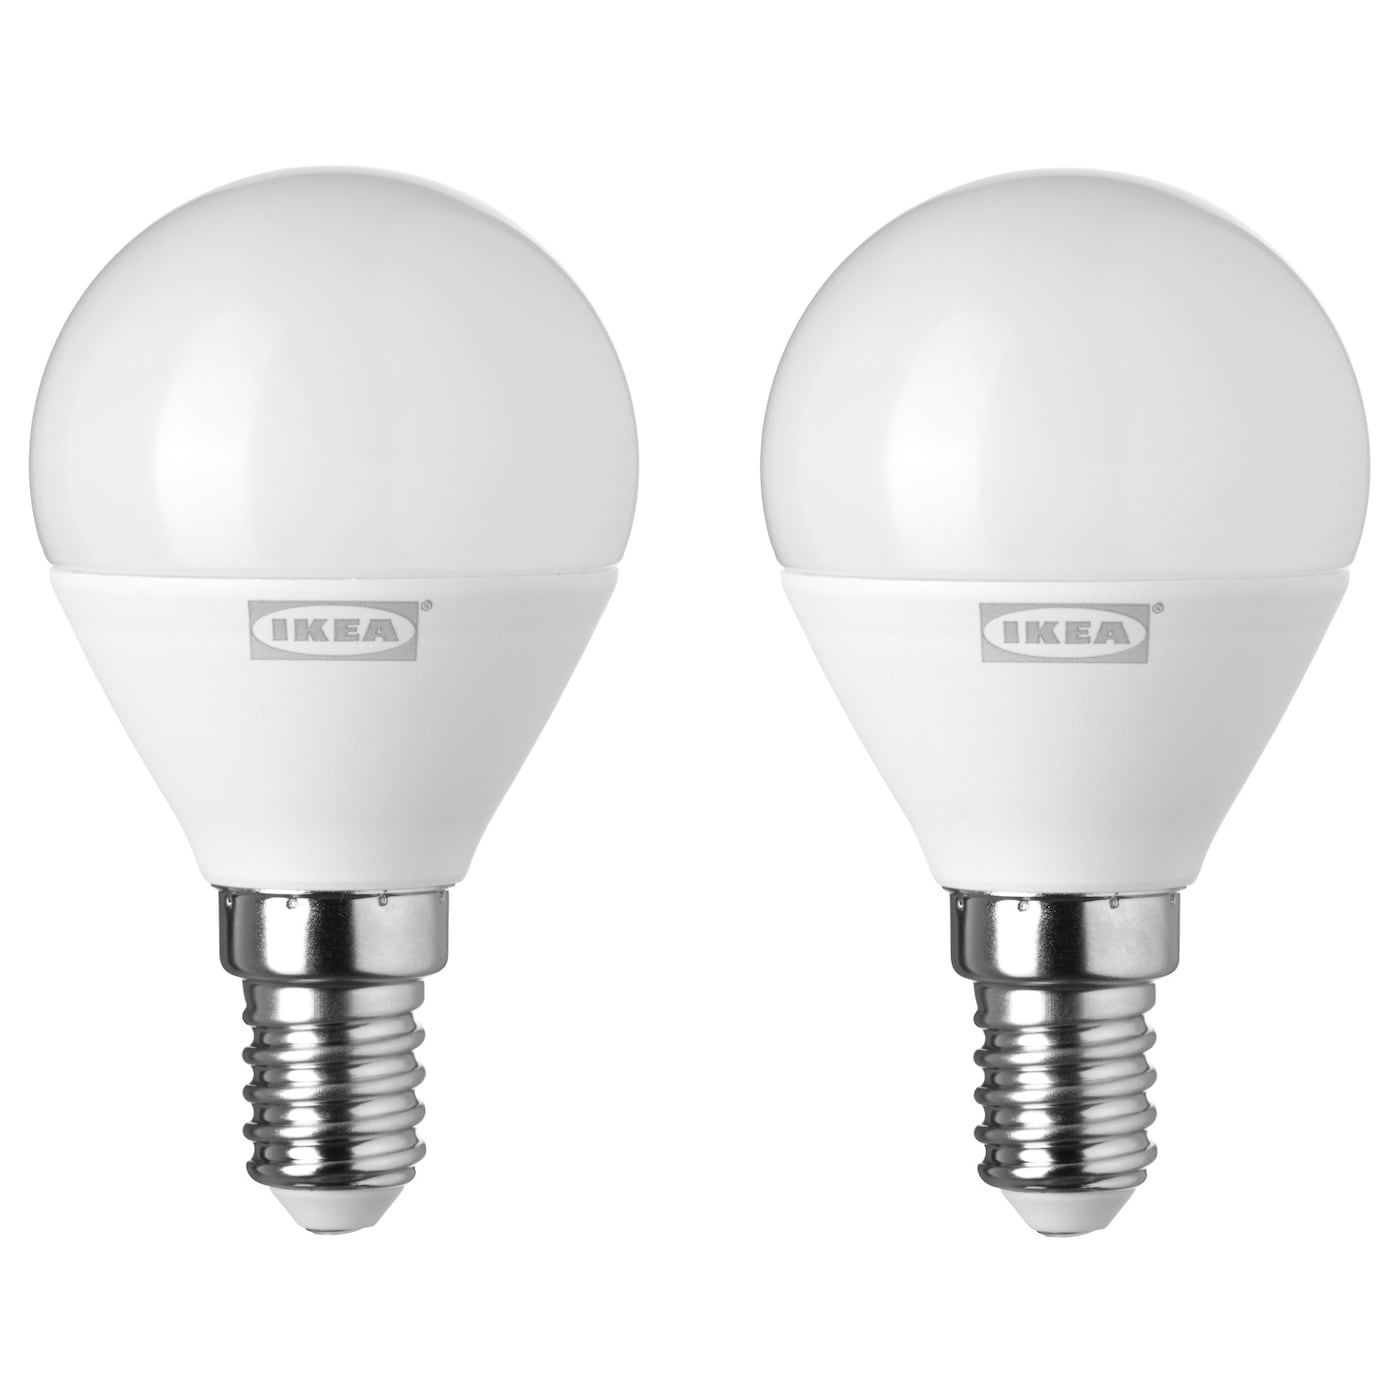 Light Bulbs Led Accessories Ikea To A Small Lightbulb With Just One Battery And Wire Ryet Bulb E14 400 Lumen